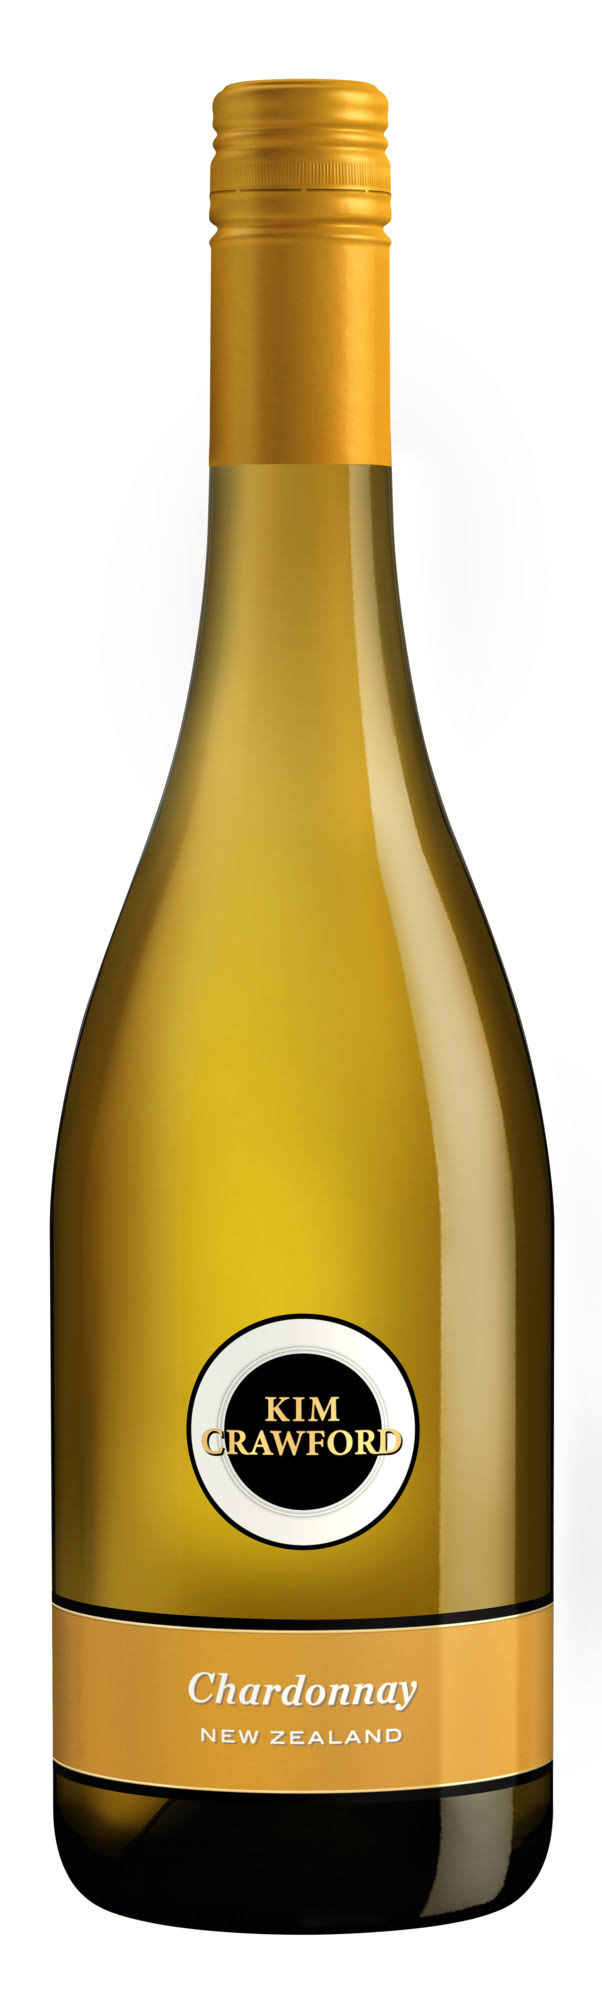 Kim Crawford Marlborough Unoaked Chardonnay